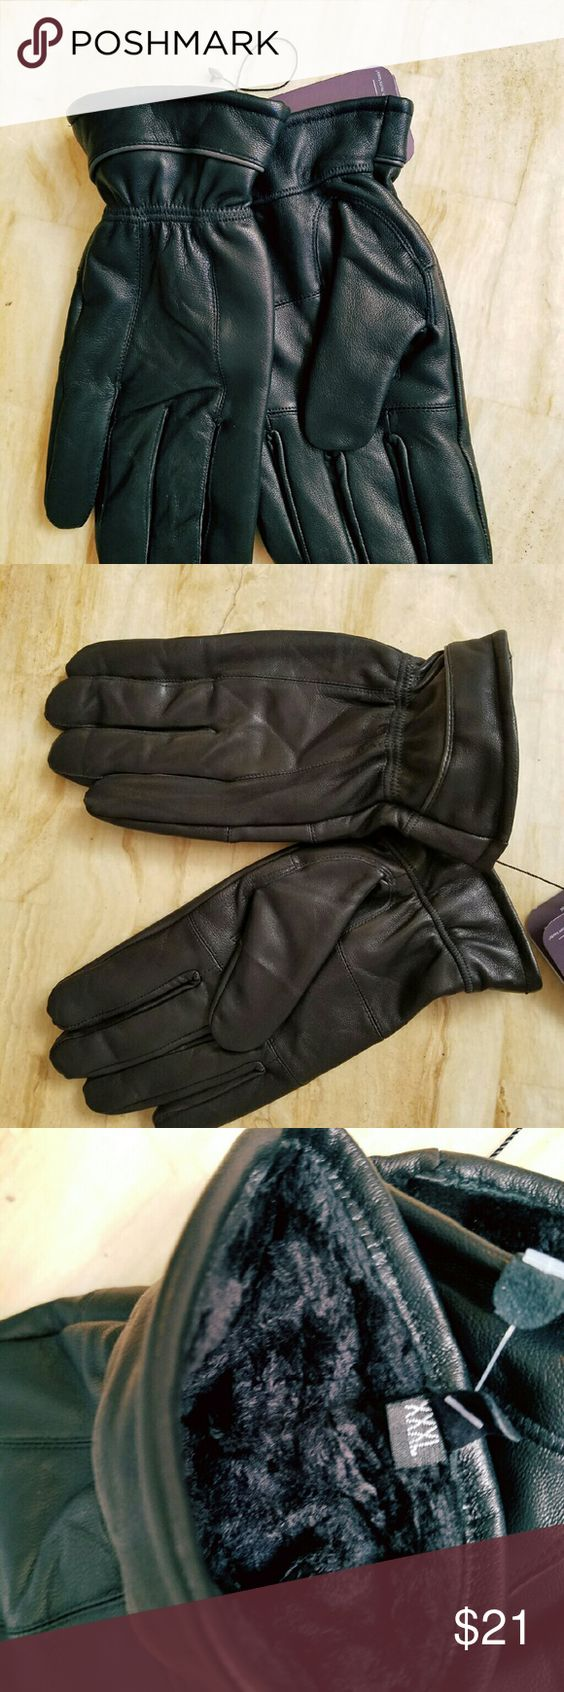 Mens leather gloves xxl - New Genuine Leather Gloves For Men Warm And Comfy Sheep Leather Is Very Soft